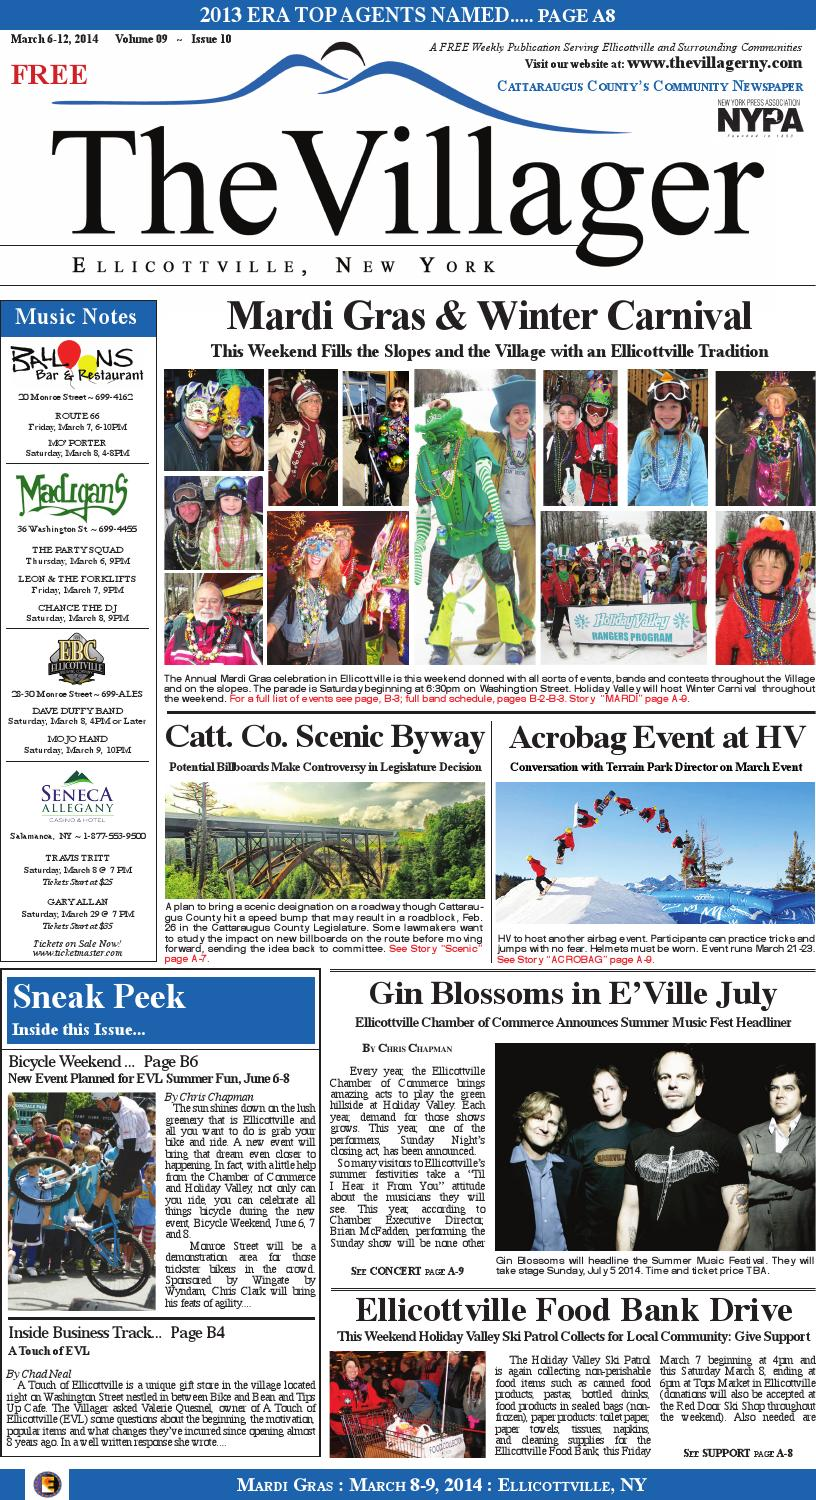 The villager ellicottville mar 6 13,2014 volume 9 issue 10 insert by ...